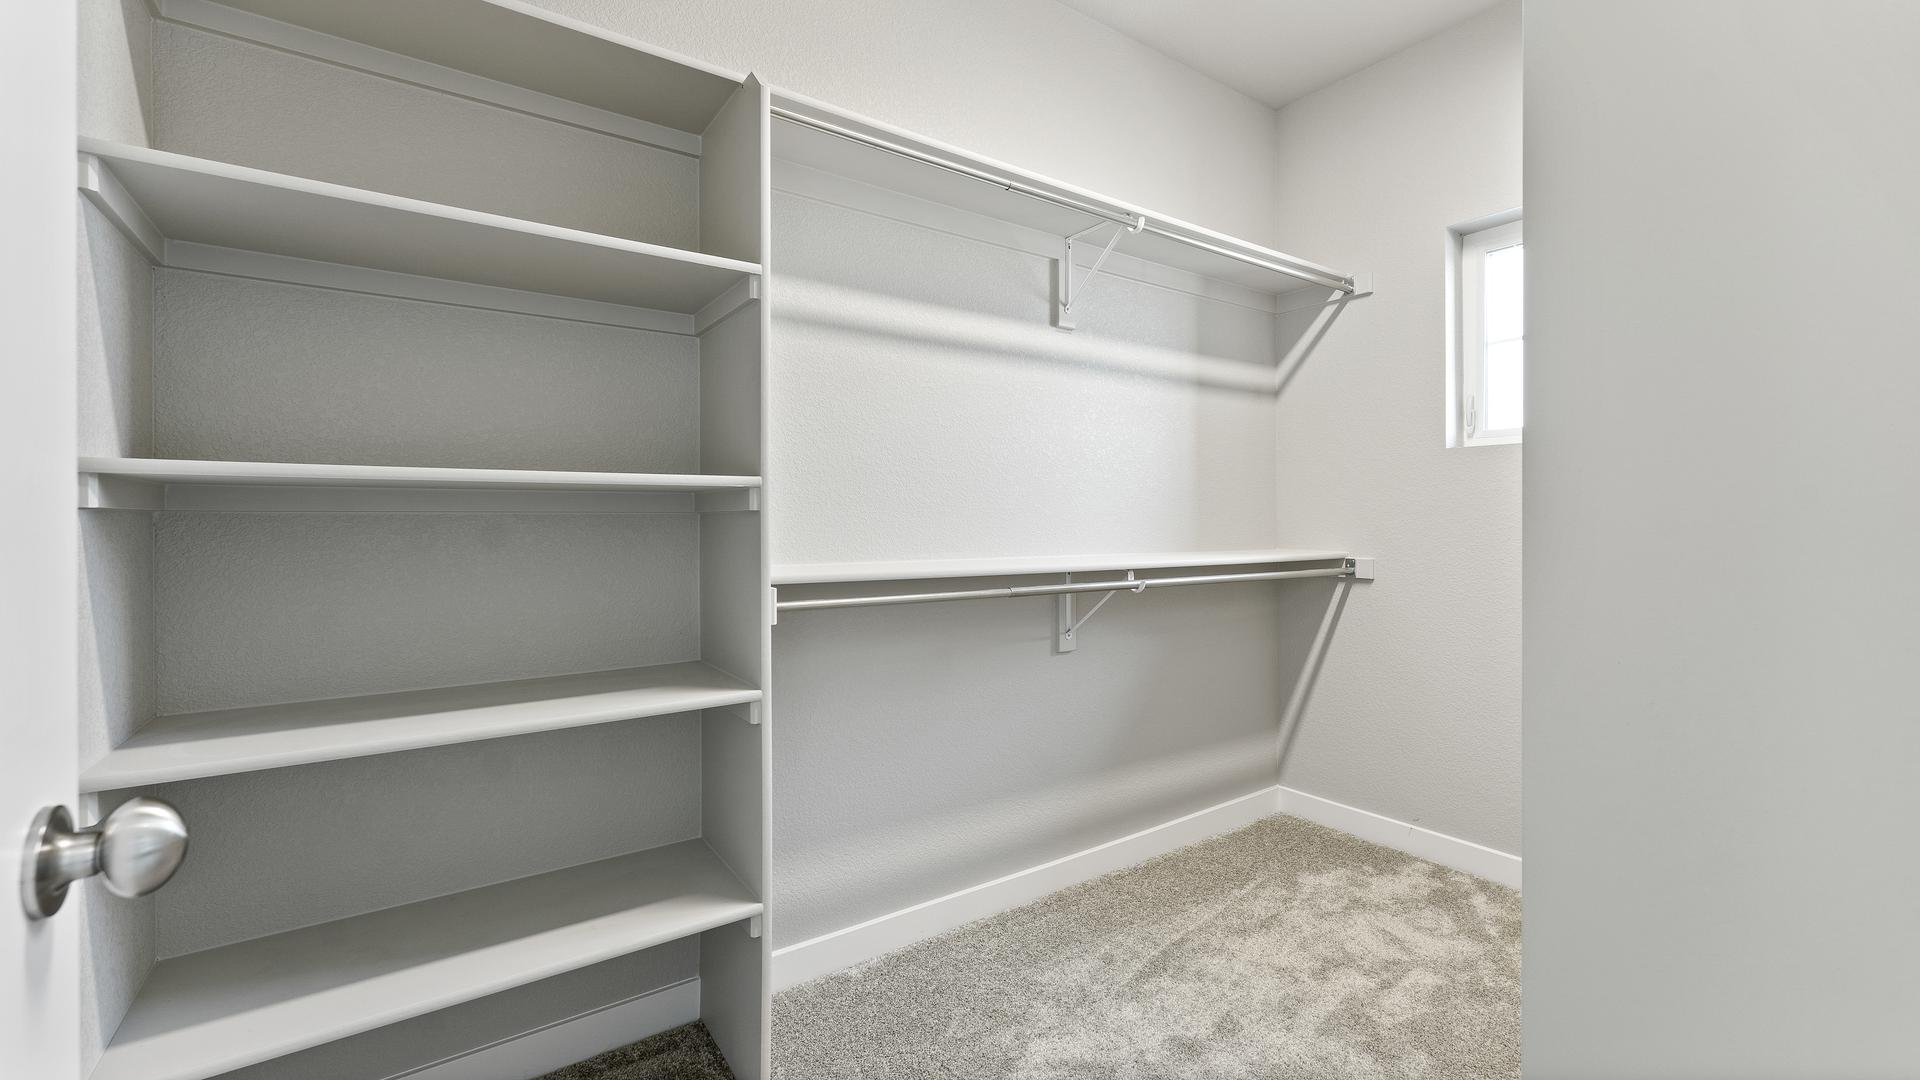 Bedroom 2 Closet  - Not Actual Home - Finishes Will Vary